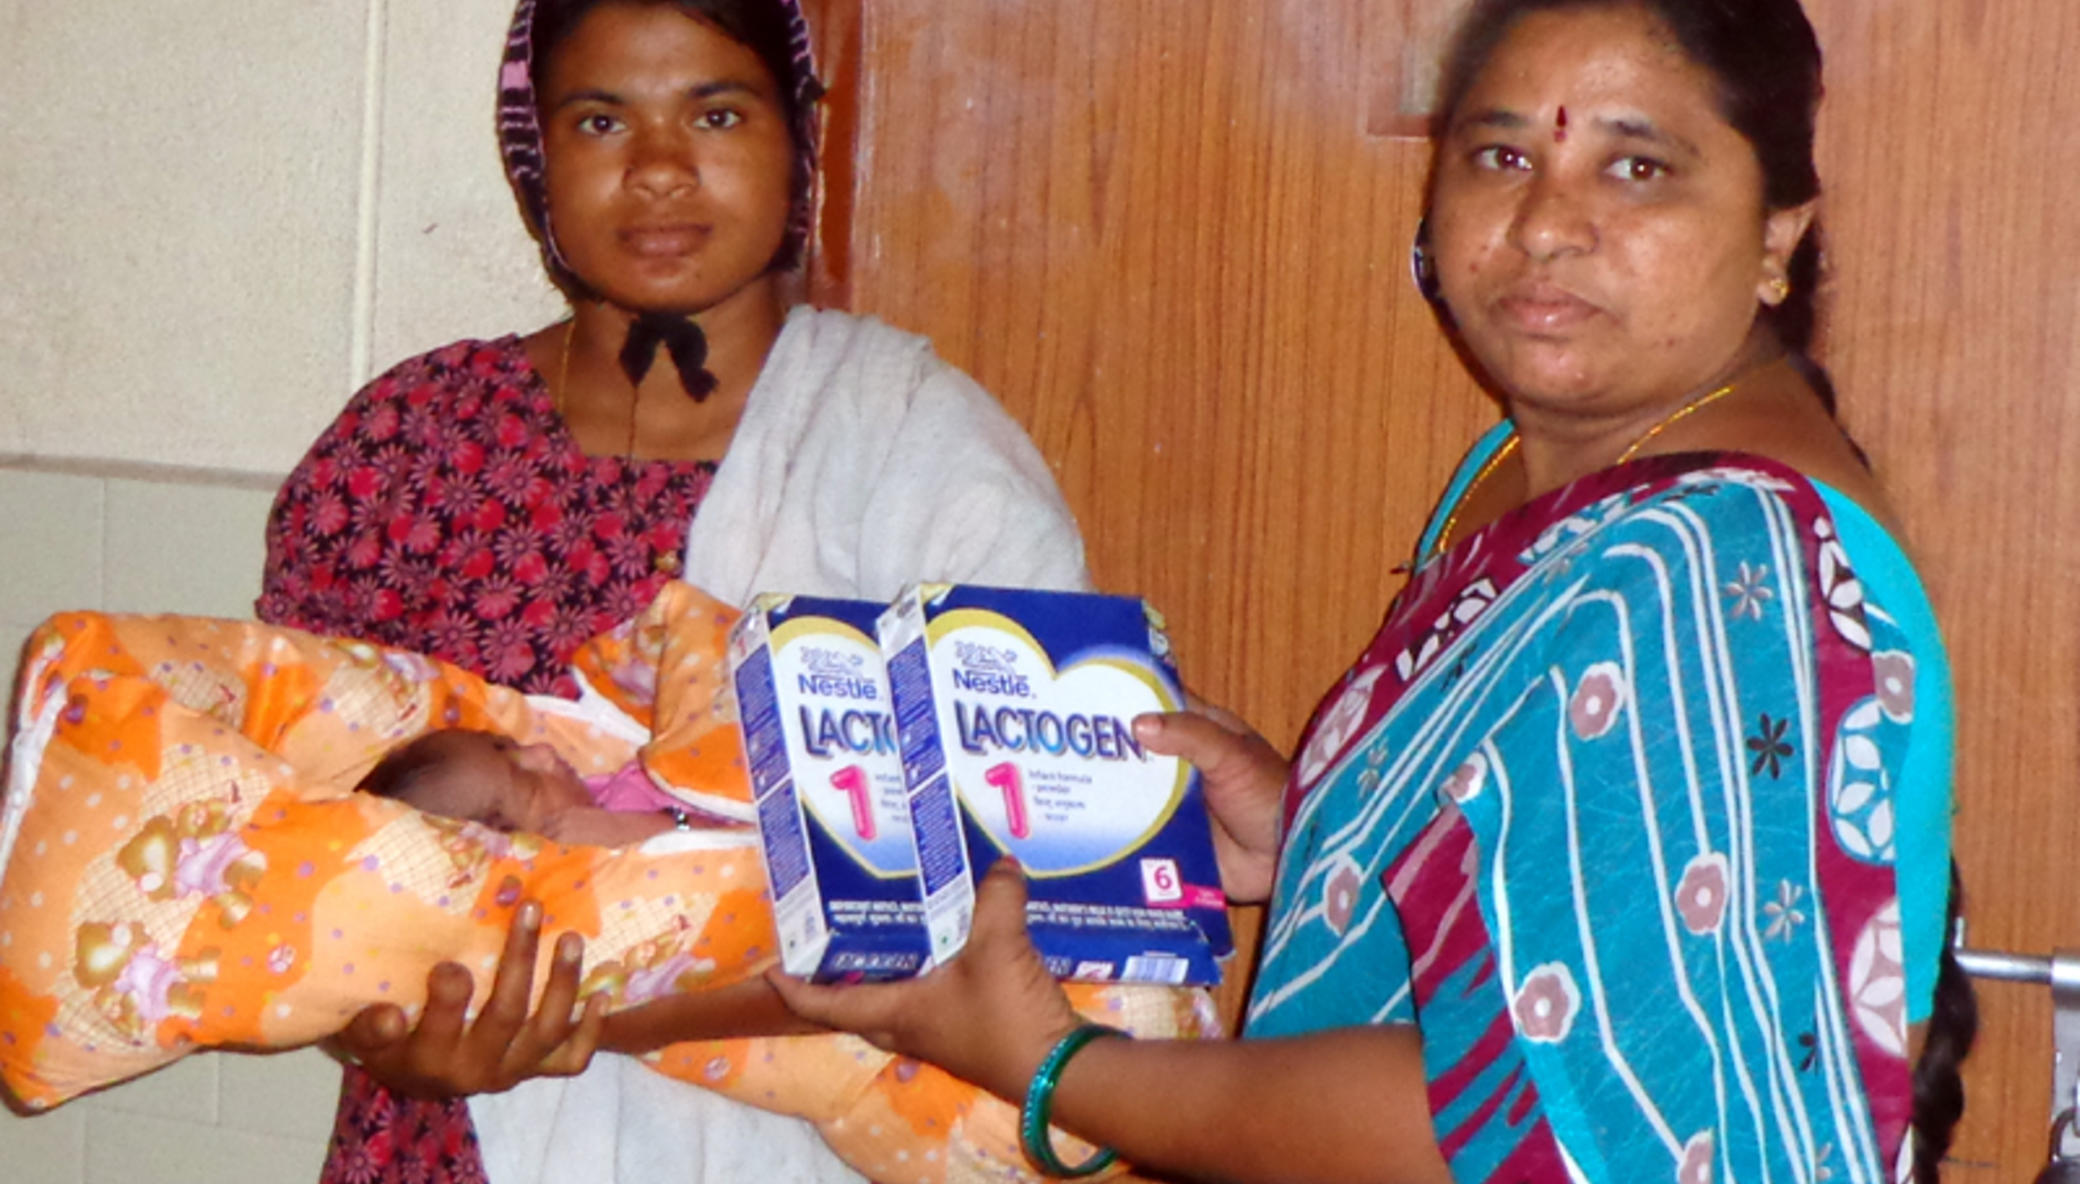 Support pregnant woman in Govt Hosp with nutrition